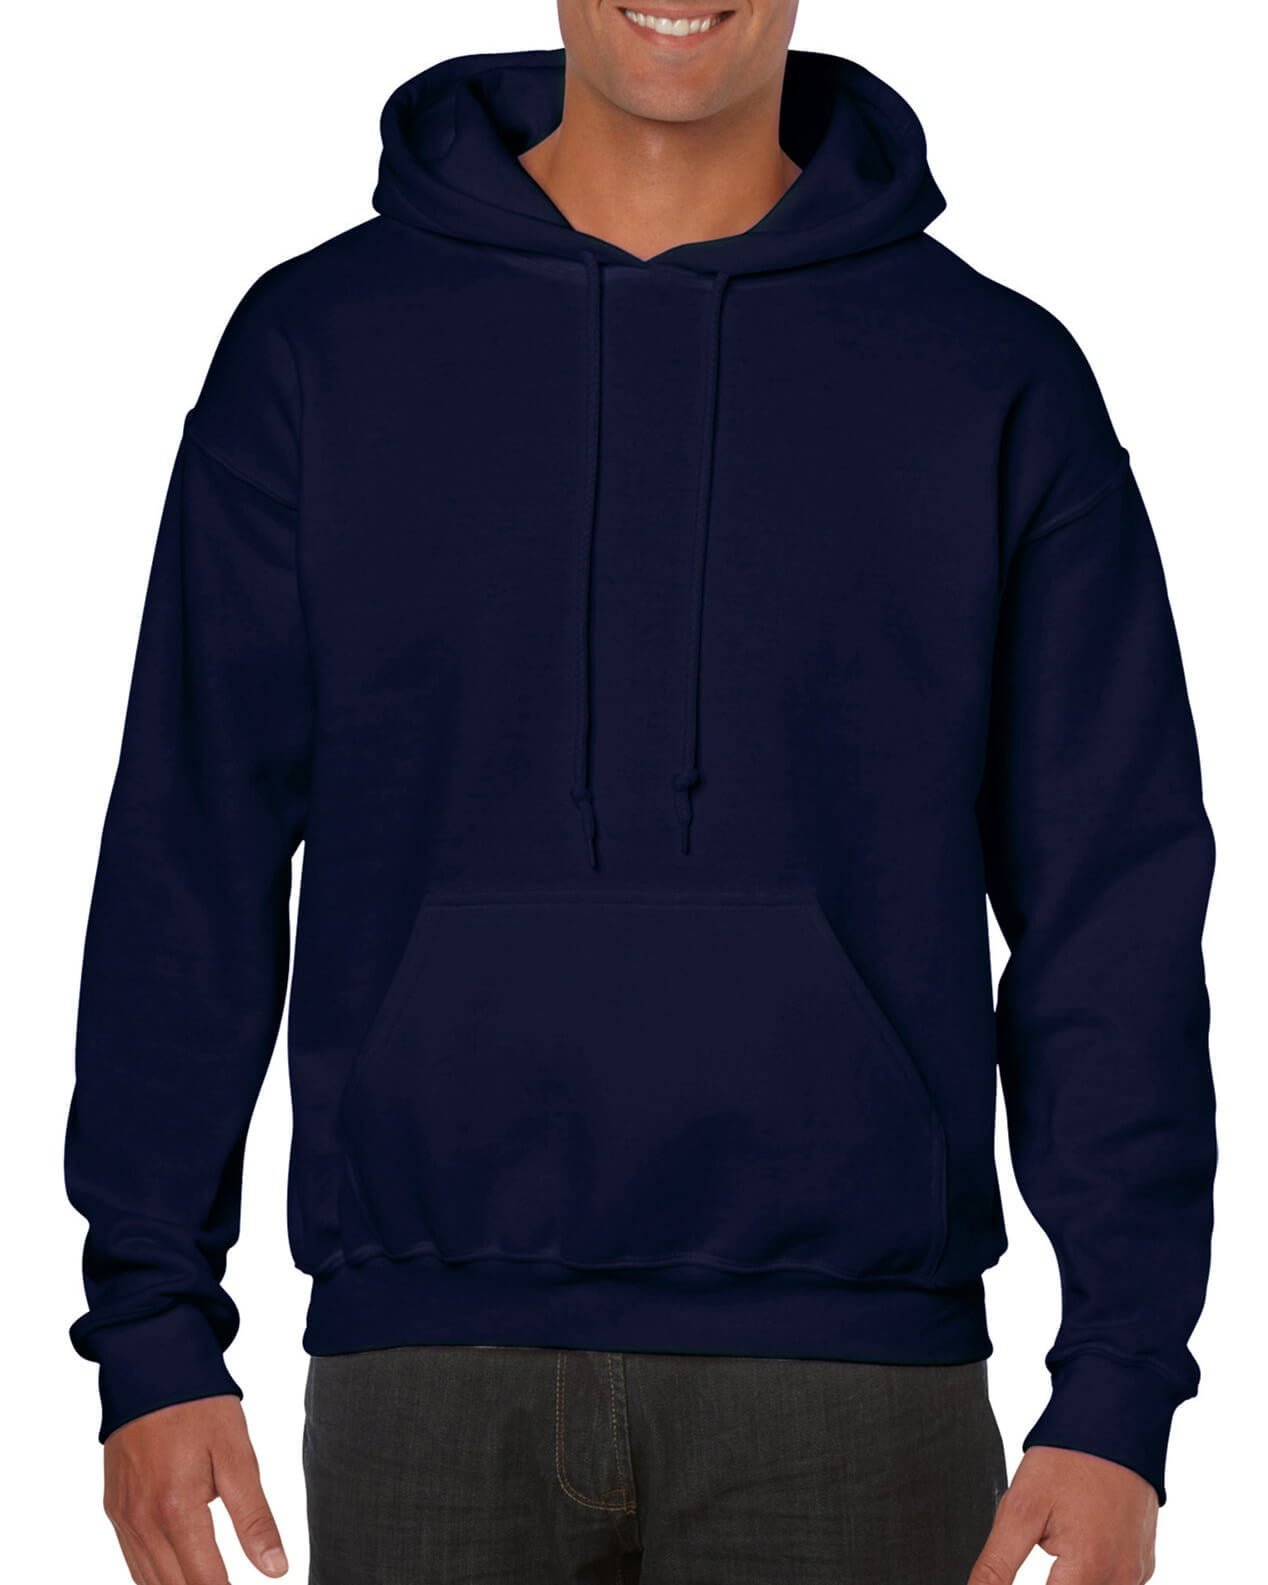 ADULT 50/50 HOODED SWEAT-Navy